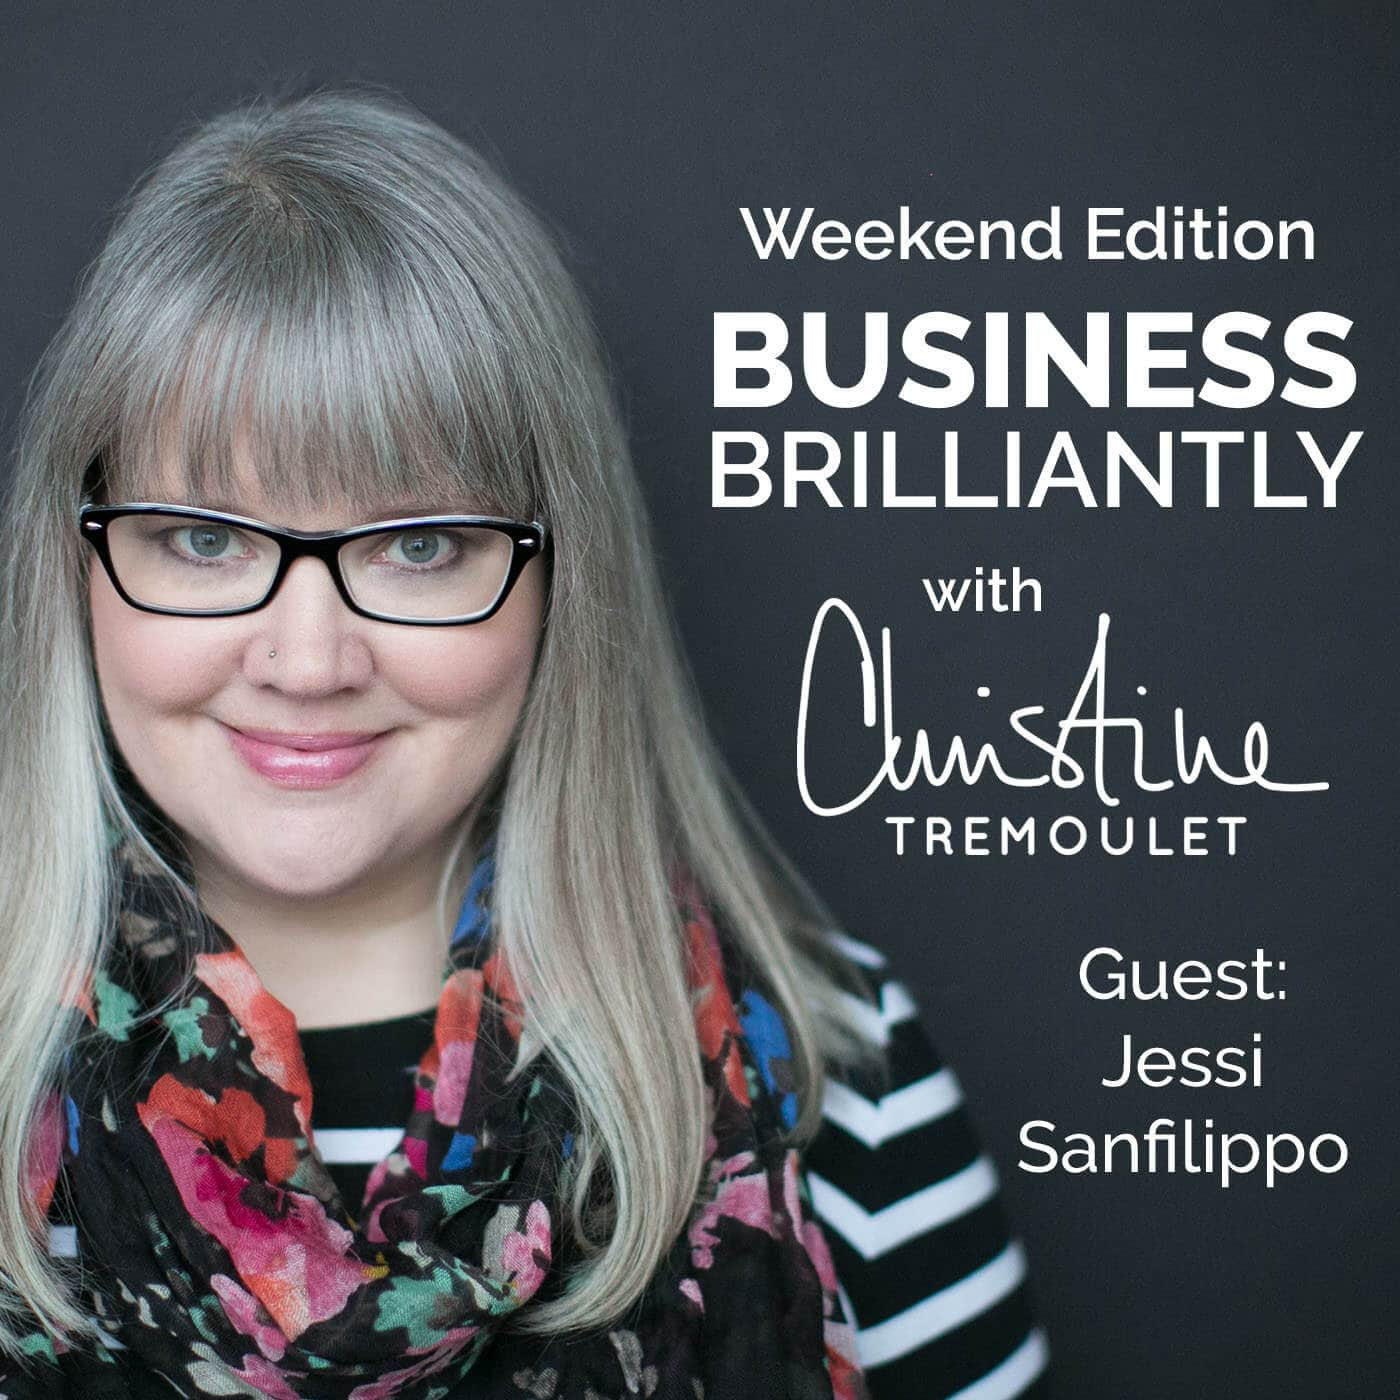 Business Brilliantly Episode 5 - Weekend Edition with Jessi Sanfilippo